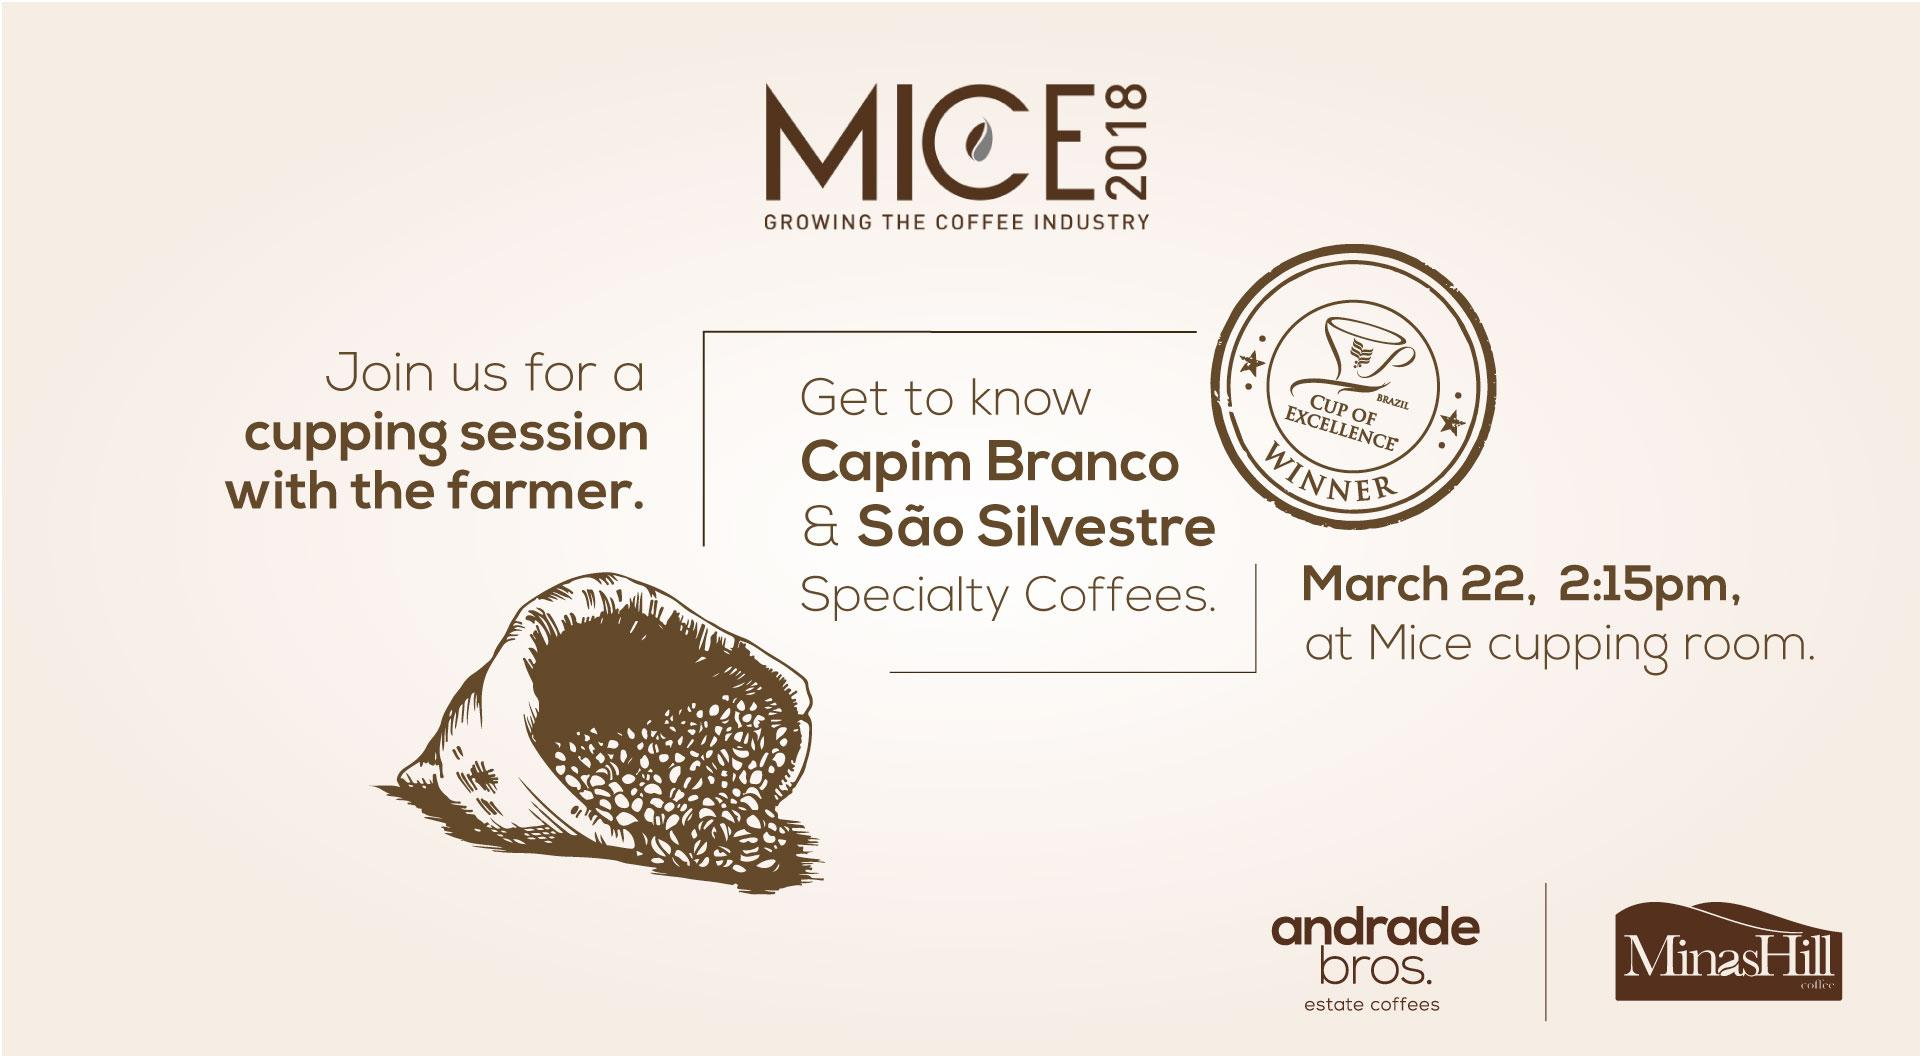 MICE 2018, see you there.